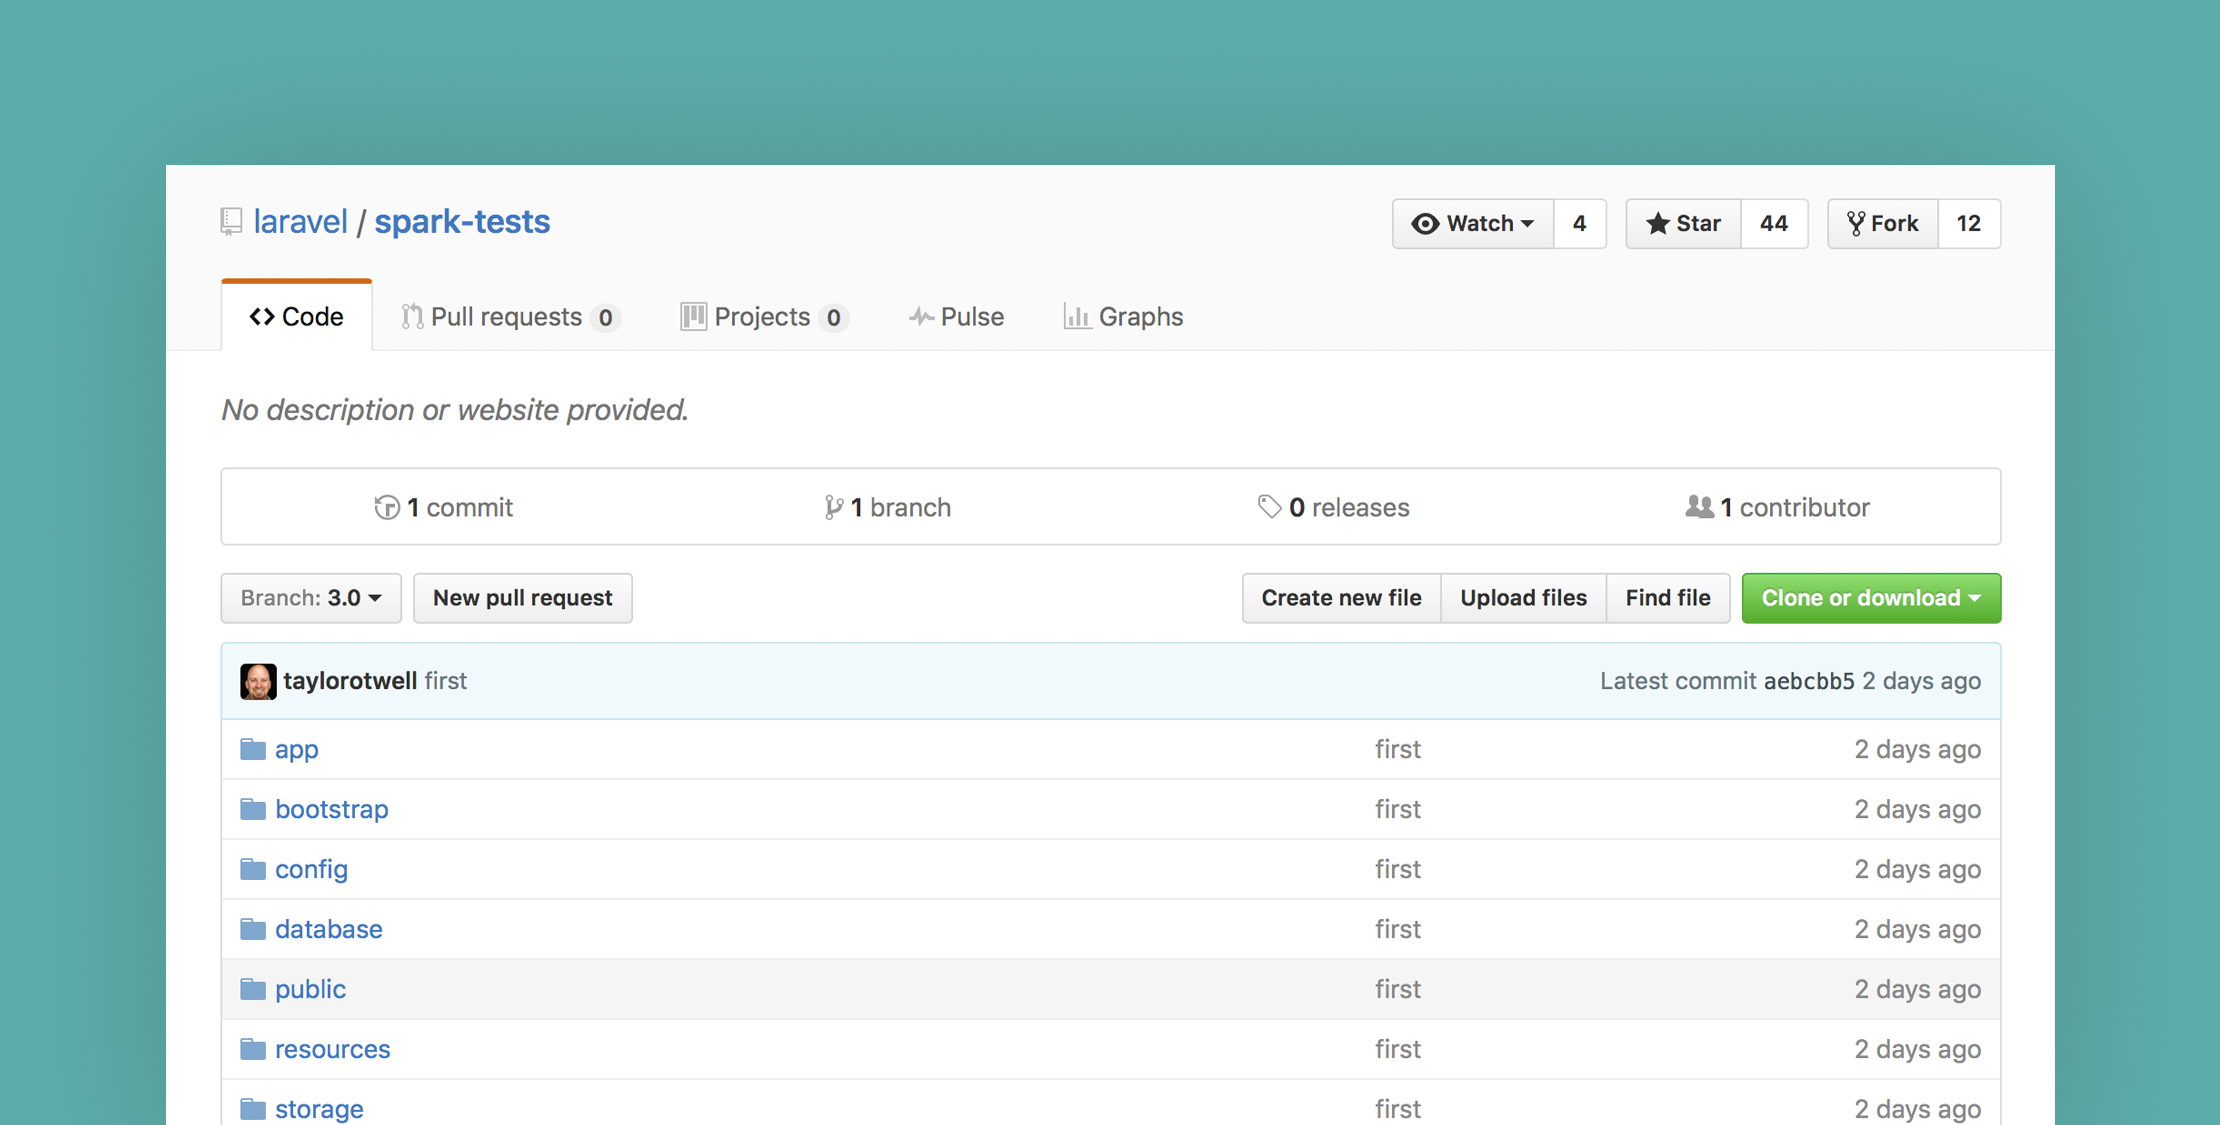 laravel-spark-tests.png